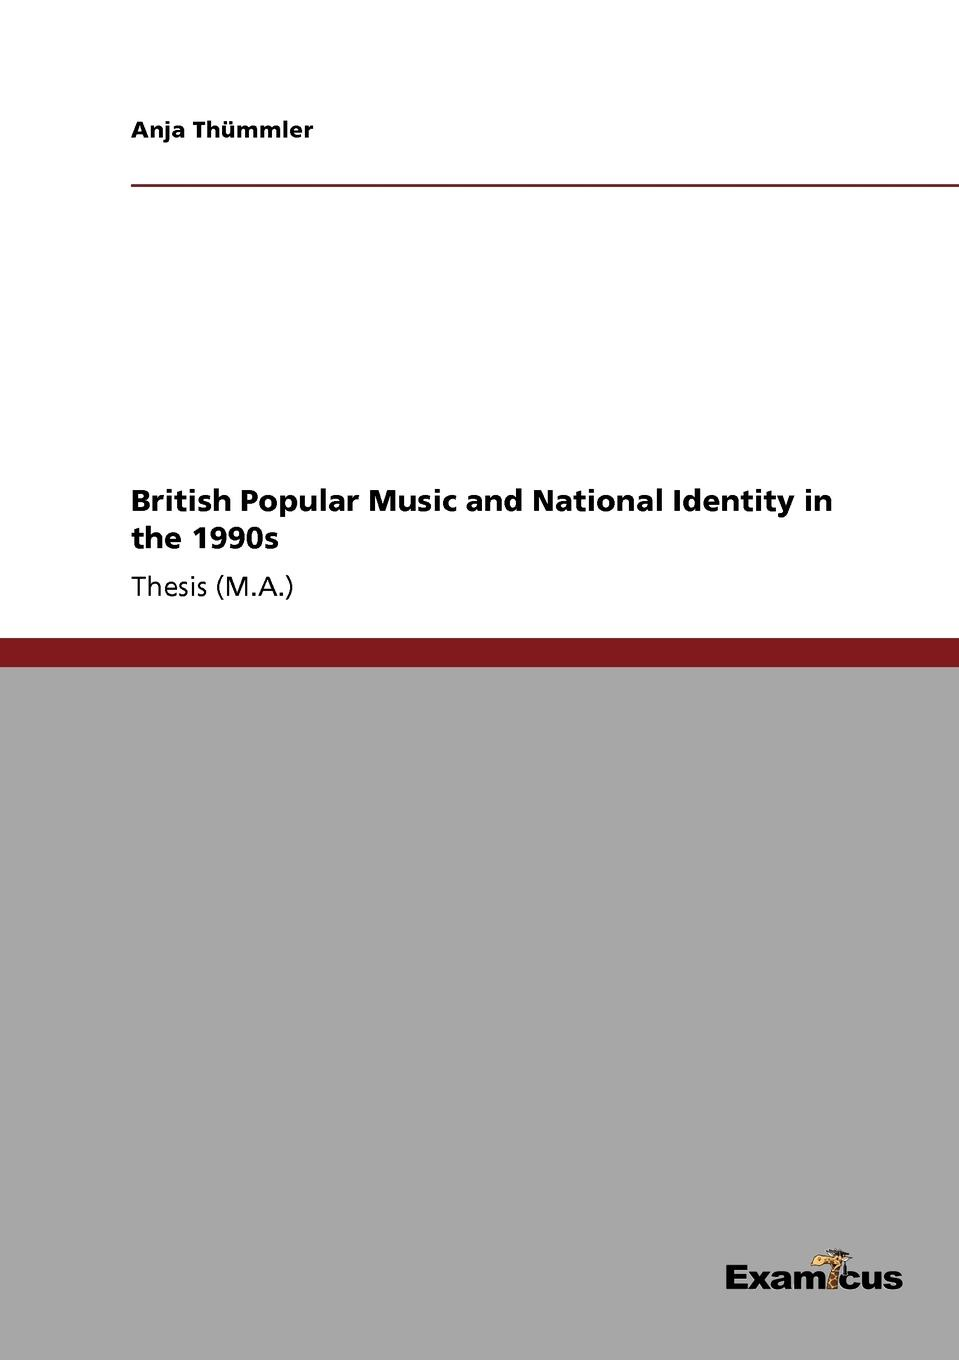 Anja Thümmler British Popular Music and National Identity in the 1990s